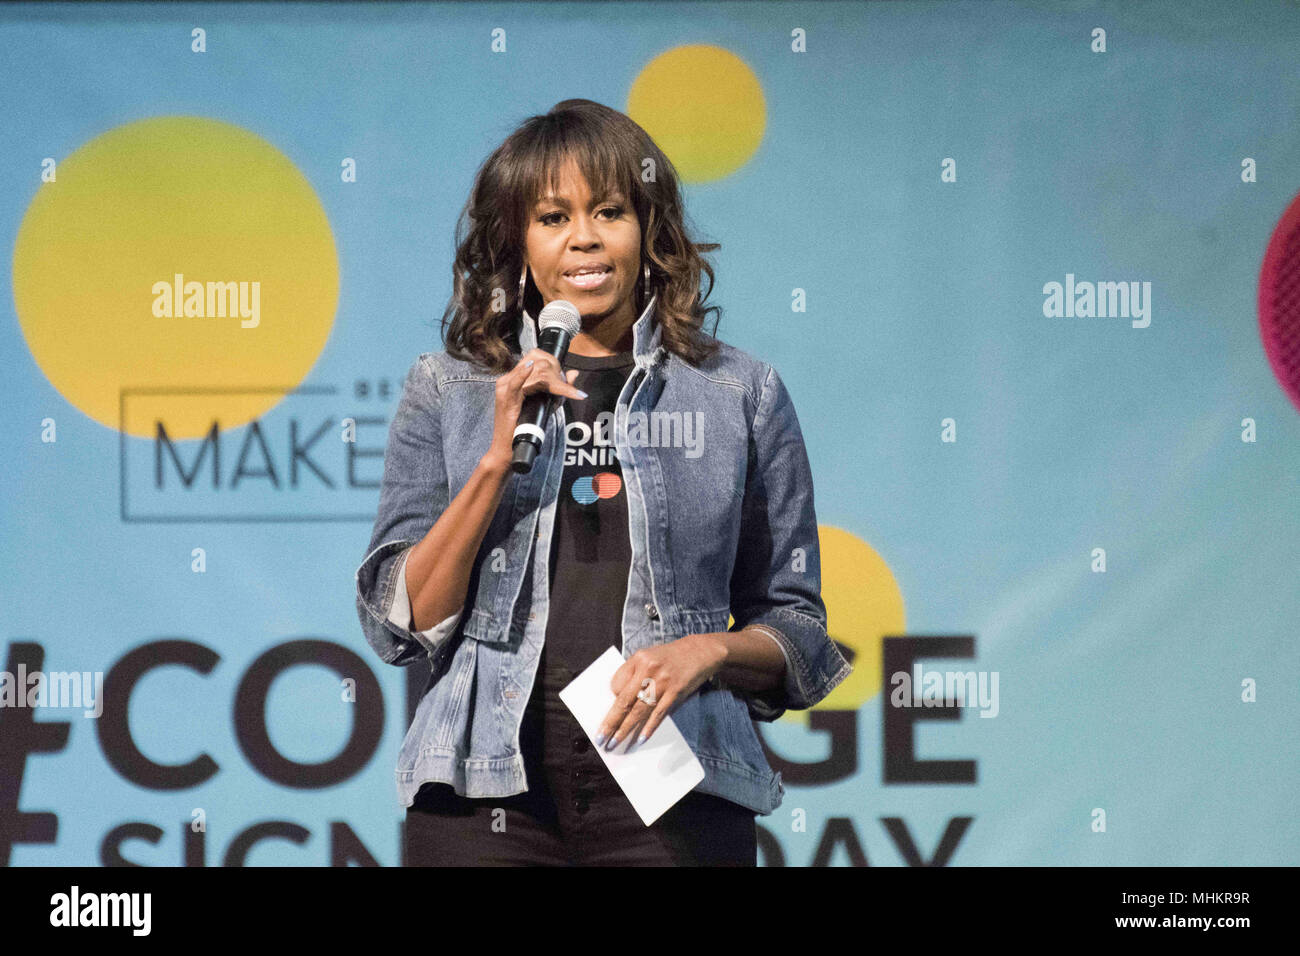 Philadelphia, Pennsylvania, USA. 2nd May, 2018. Former FLOTUS, MICHELLE OBAMA, at the College signing day rally at Temple University's Liacouras Center in Philadelphia Pennsylvania Credit: Ricky Fitchett/ZUMA Wire/Alamy Live News Stock Photo